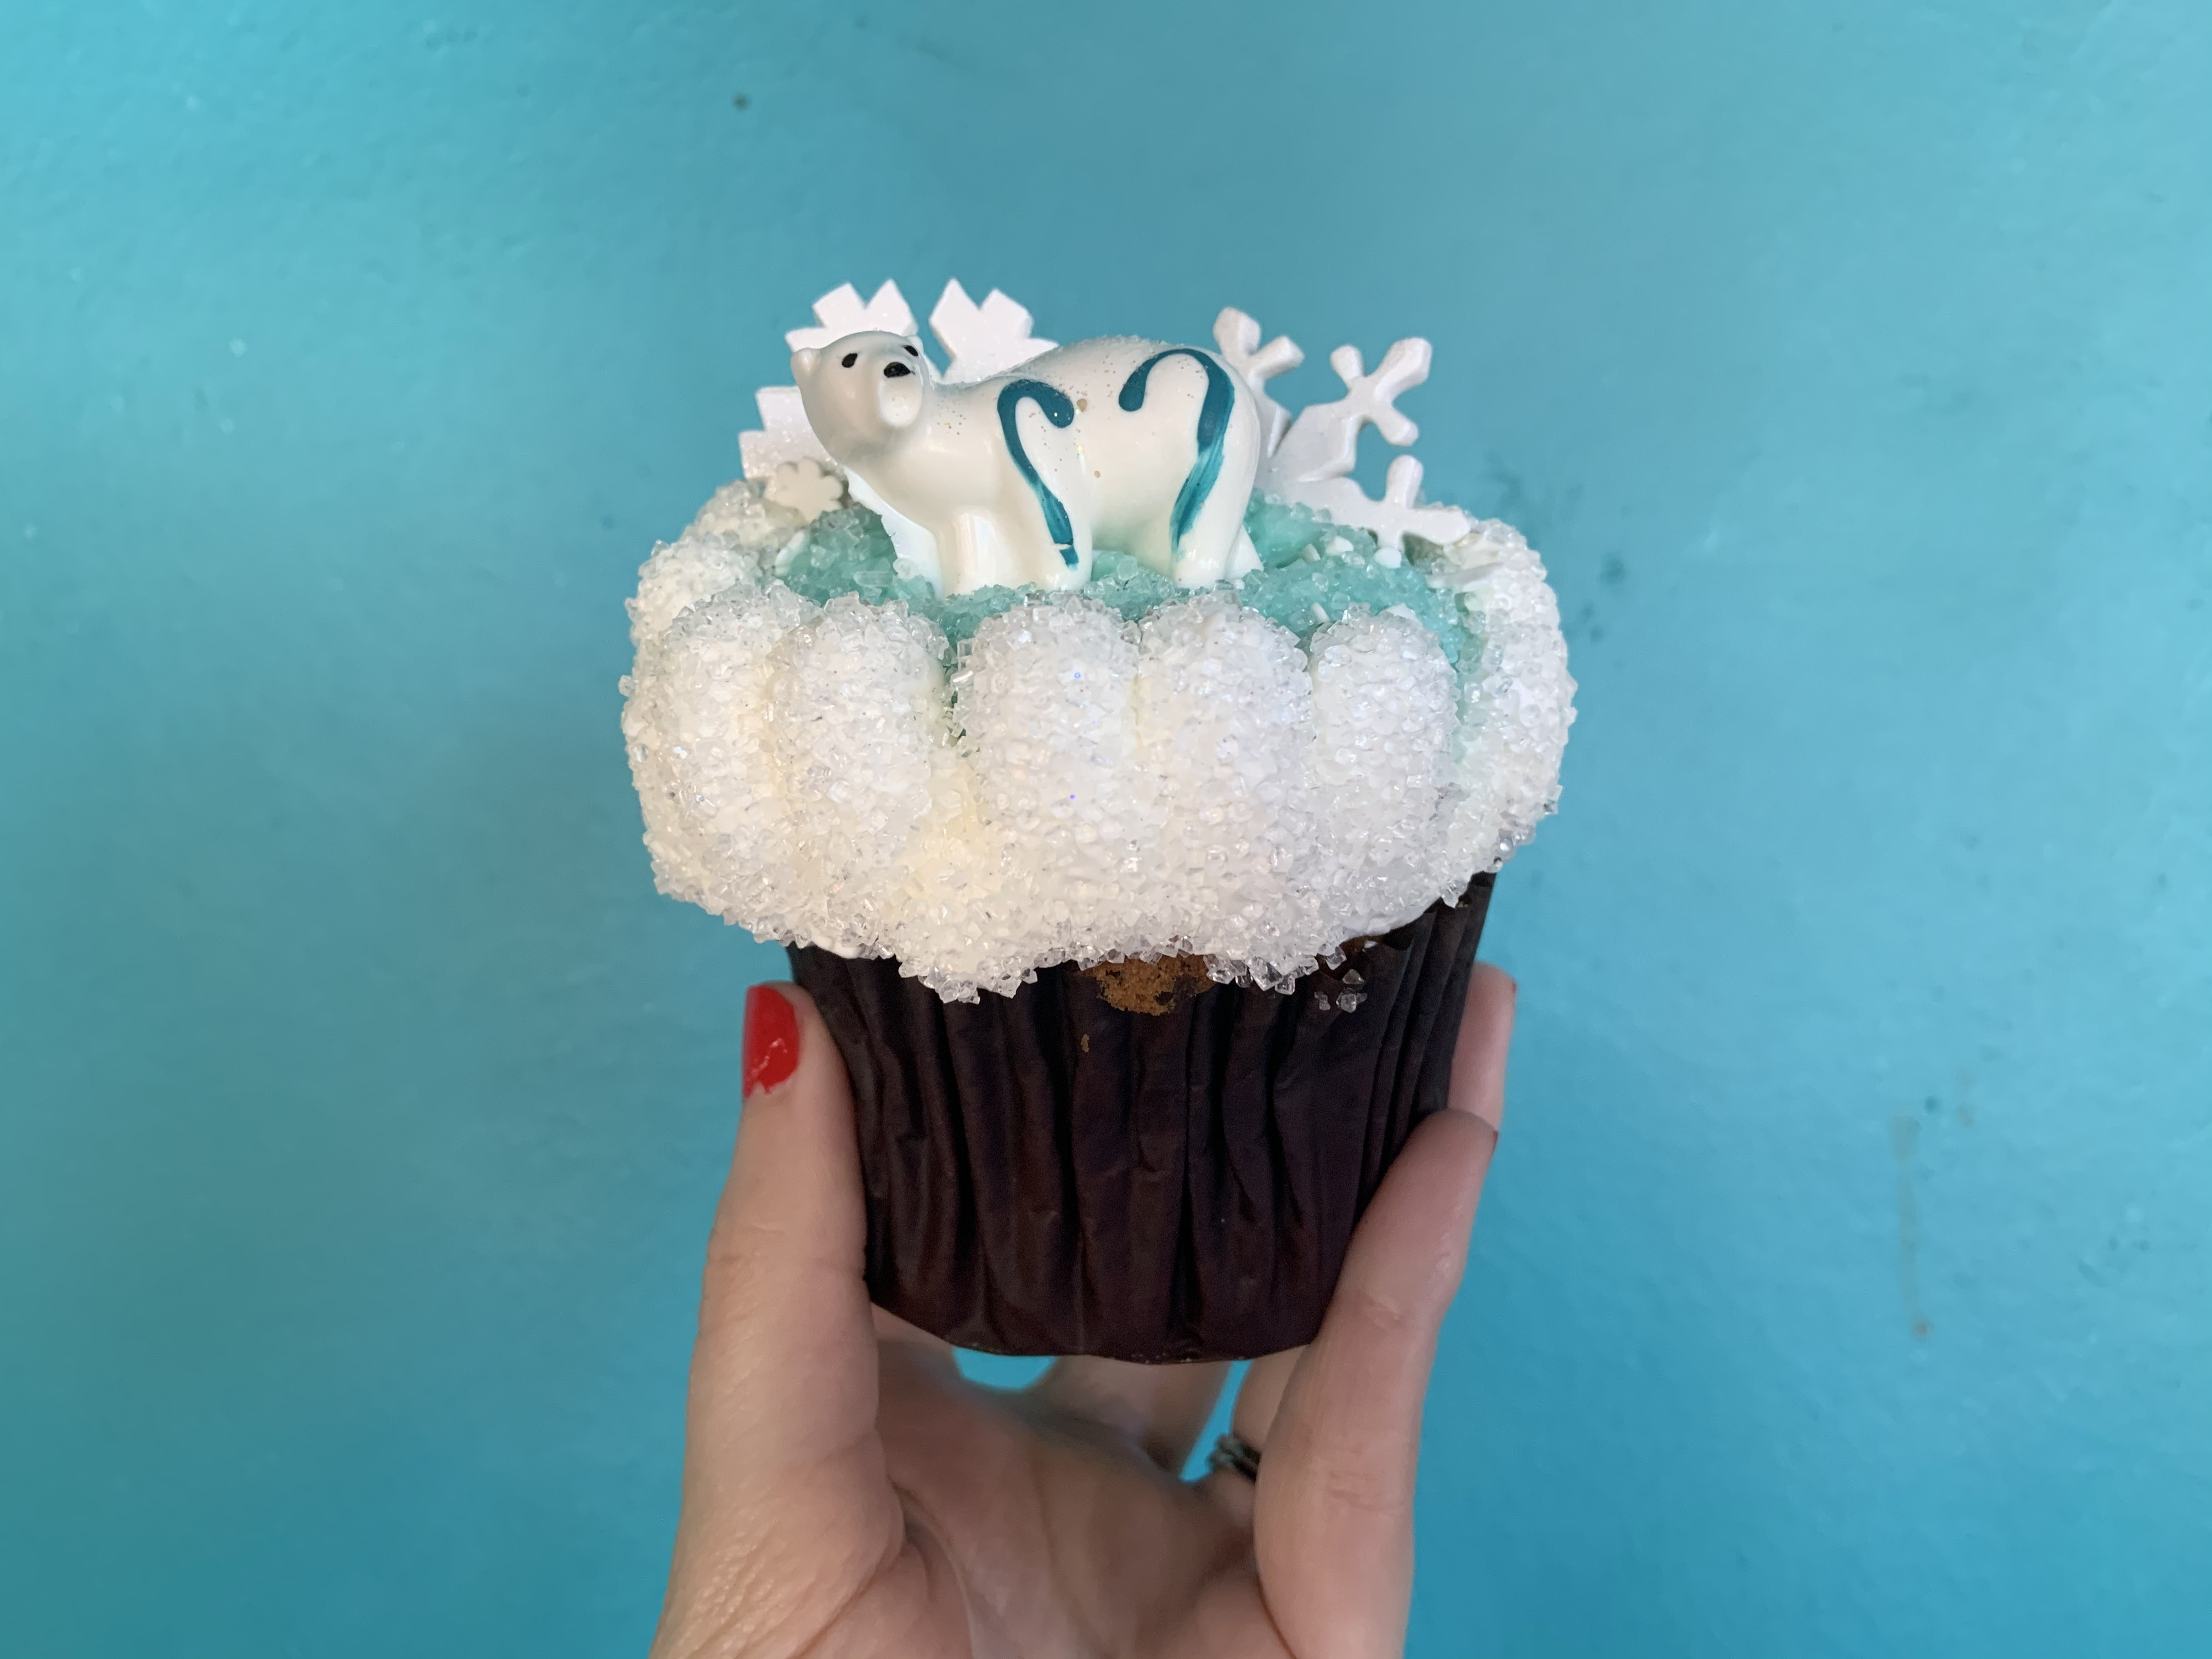 Merry Menagerie cupcake 12/7/19 13